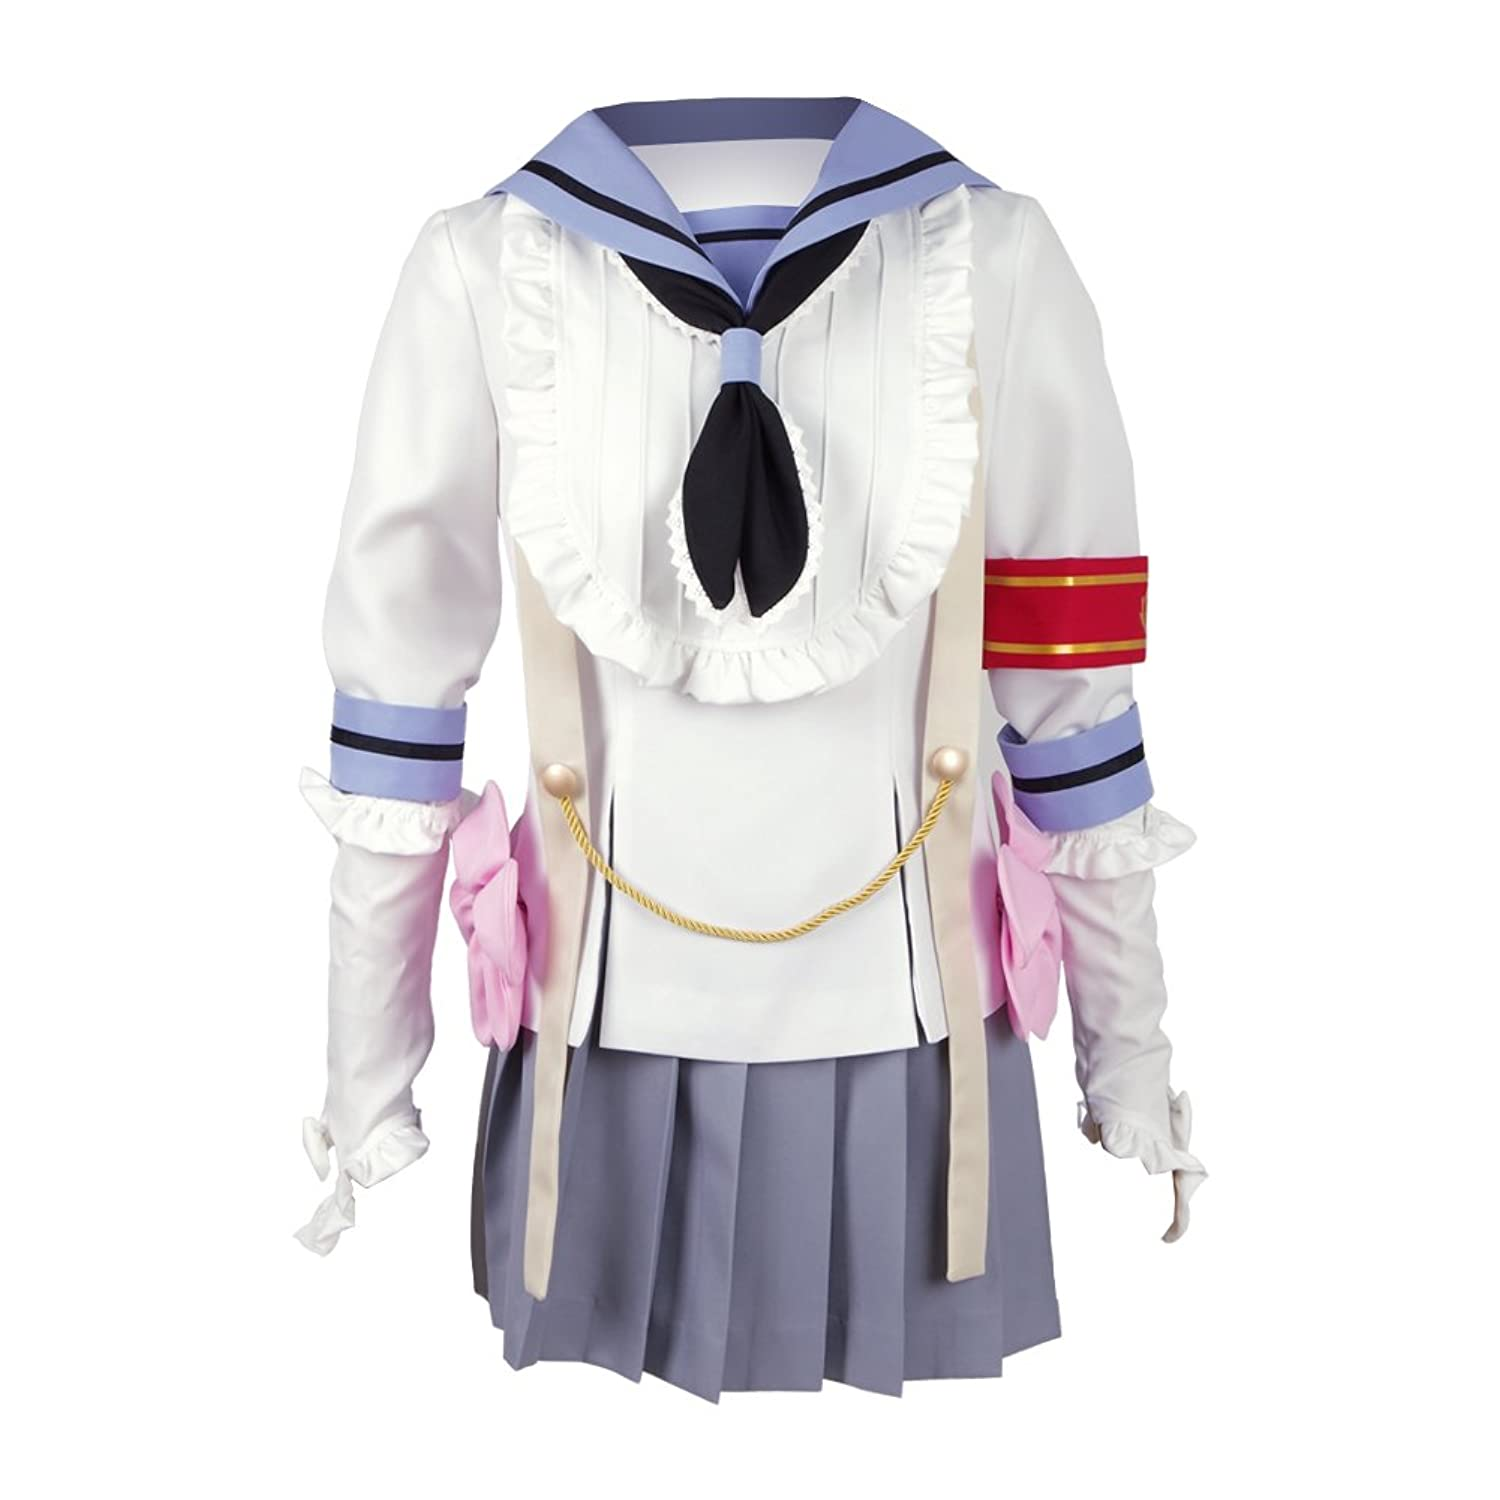 Well Trade Women's Dress Cosplay Magic Girl Snow White Uniform Suit